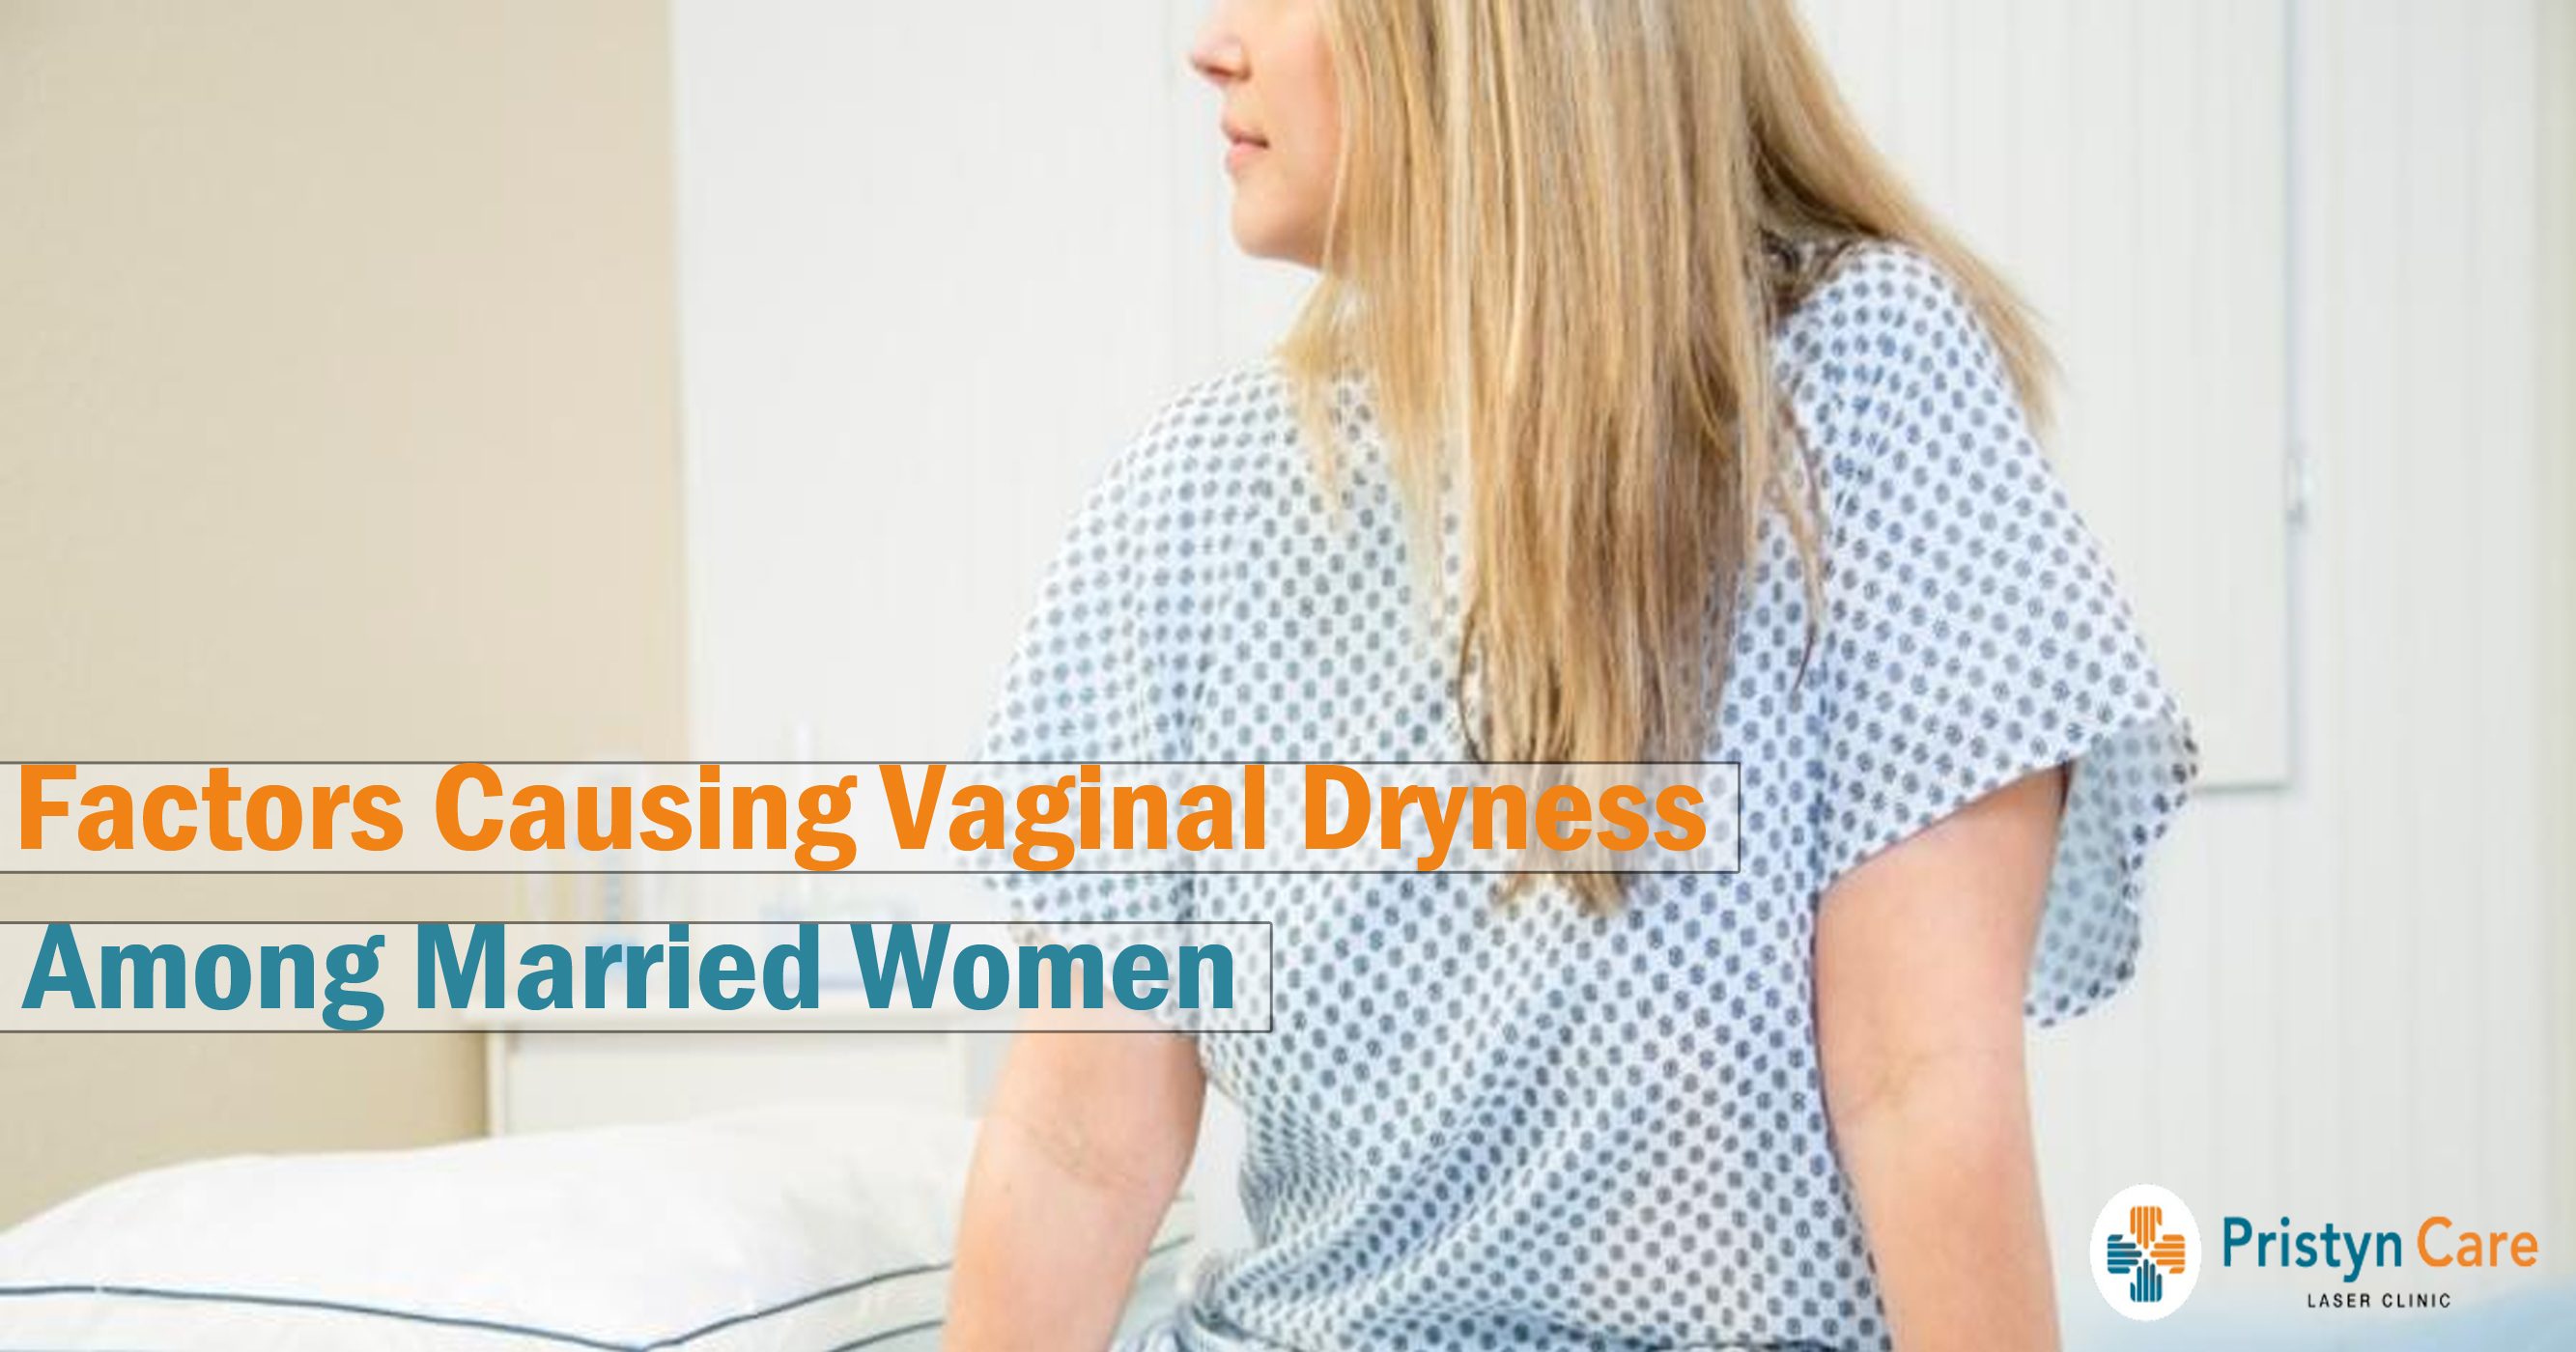 Factors Causing Vaginal Dryness among Married Women